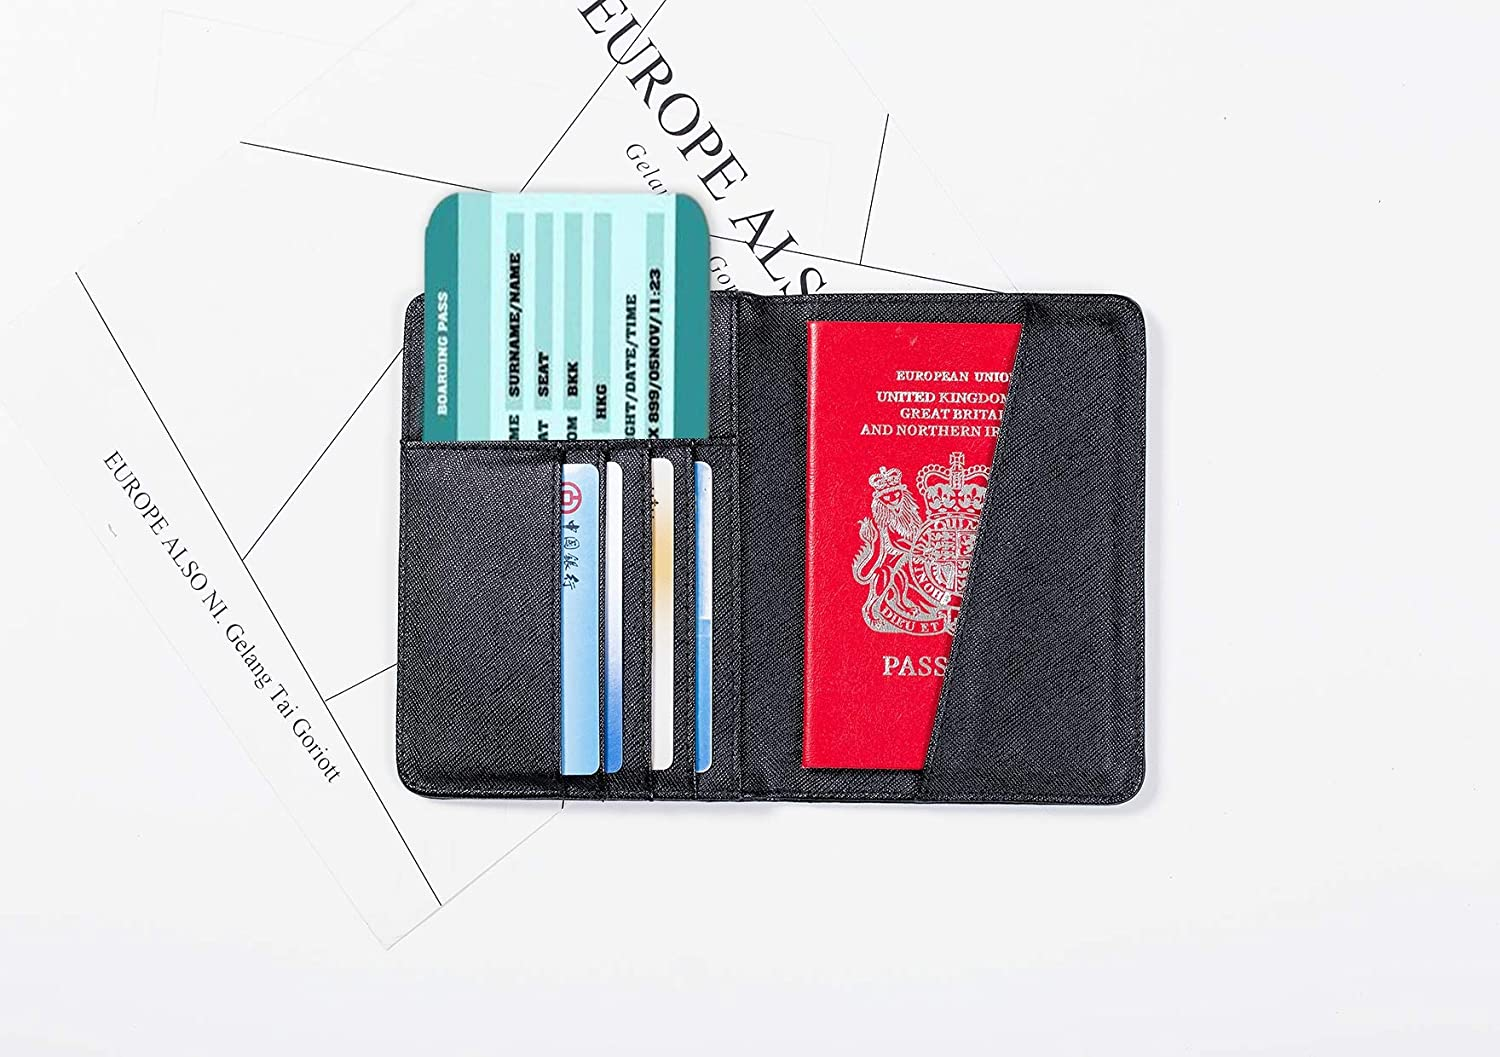 Womans Passport Cover Fashion Cartoon Cute Tool Wrench U.s Passport Cover Multi Purpose Print Luxury Passport Cover Travel Wallets For Unisex 5.51x4.37 Inch